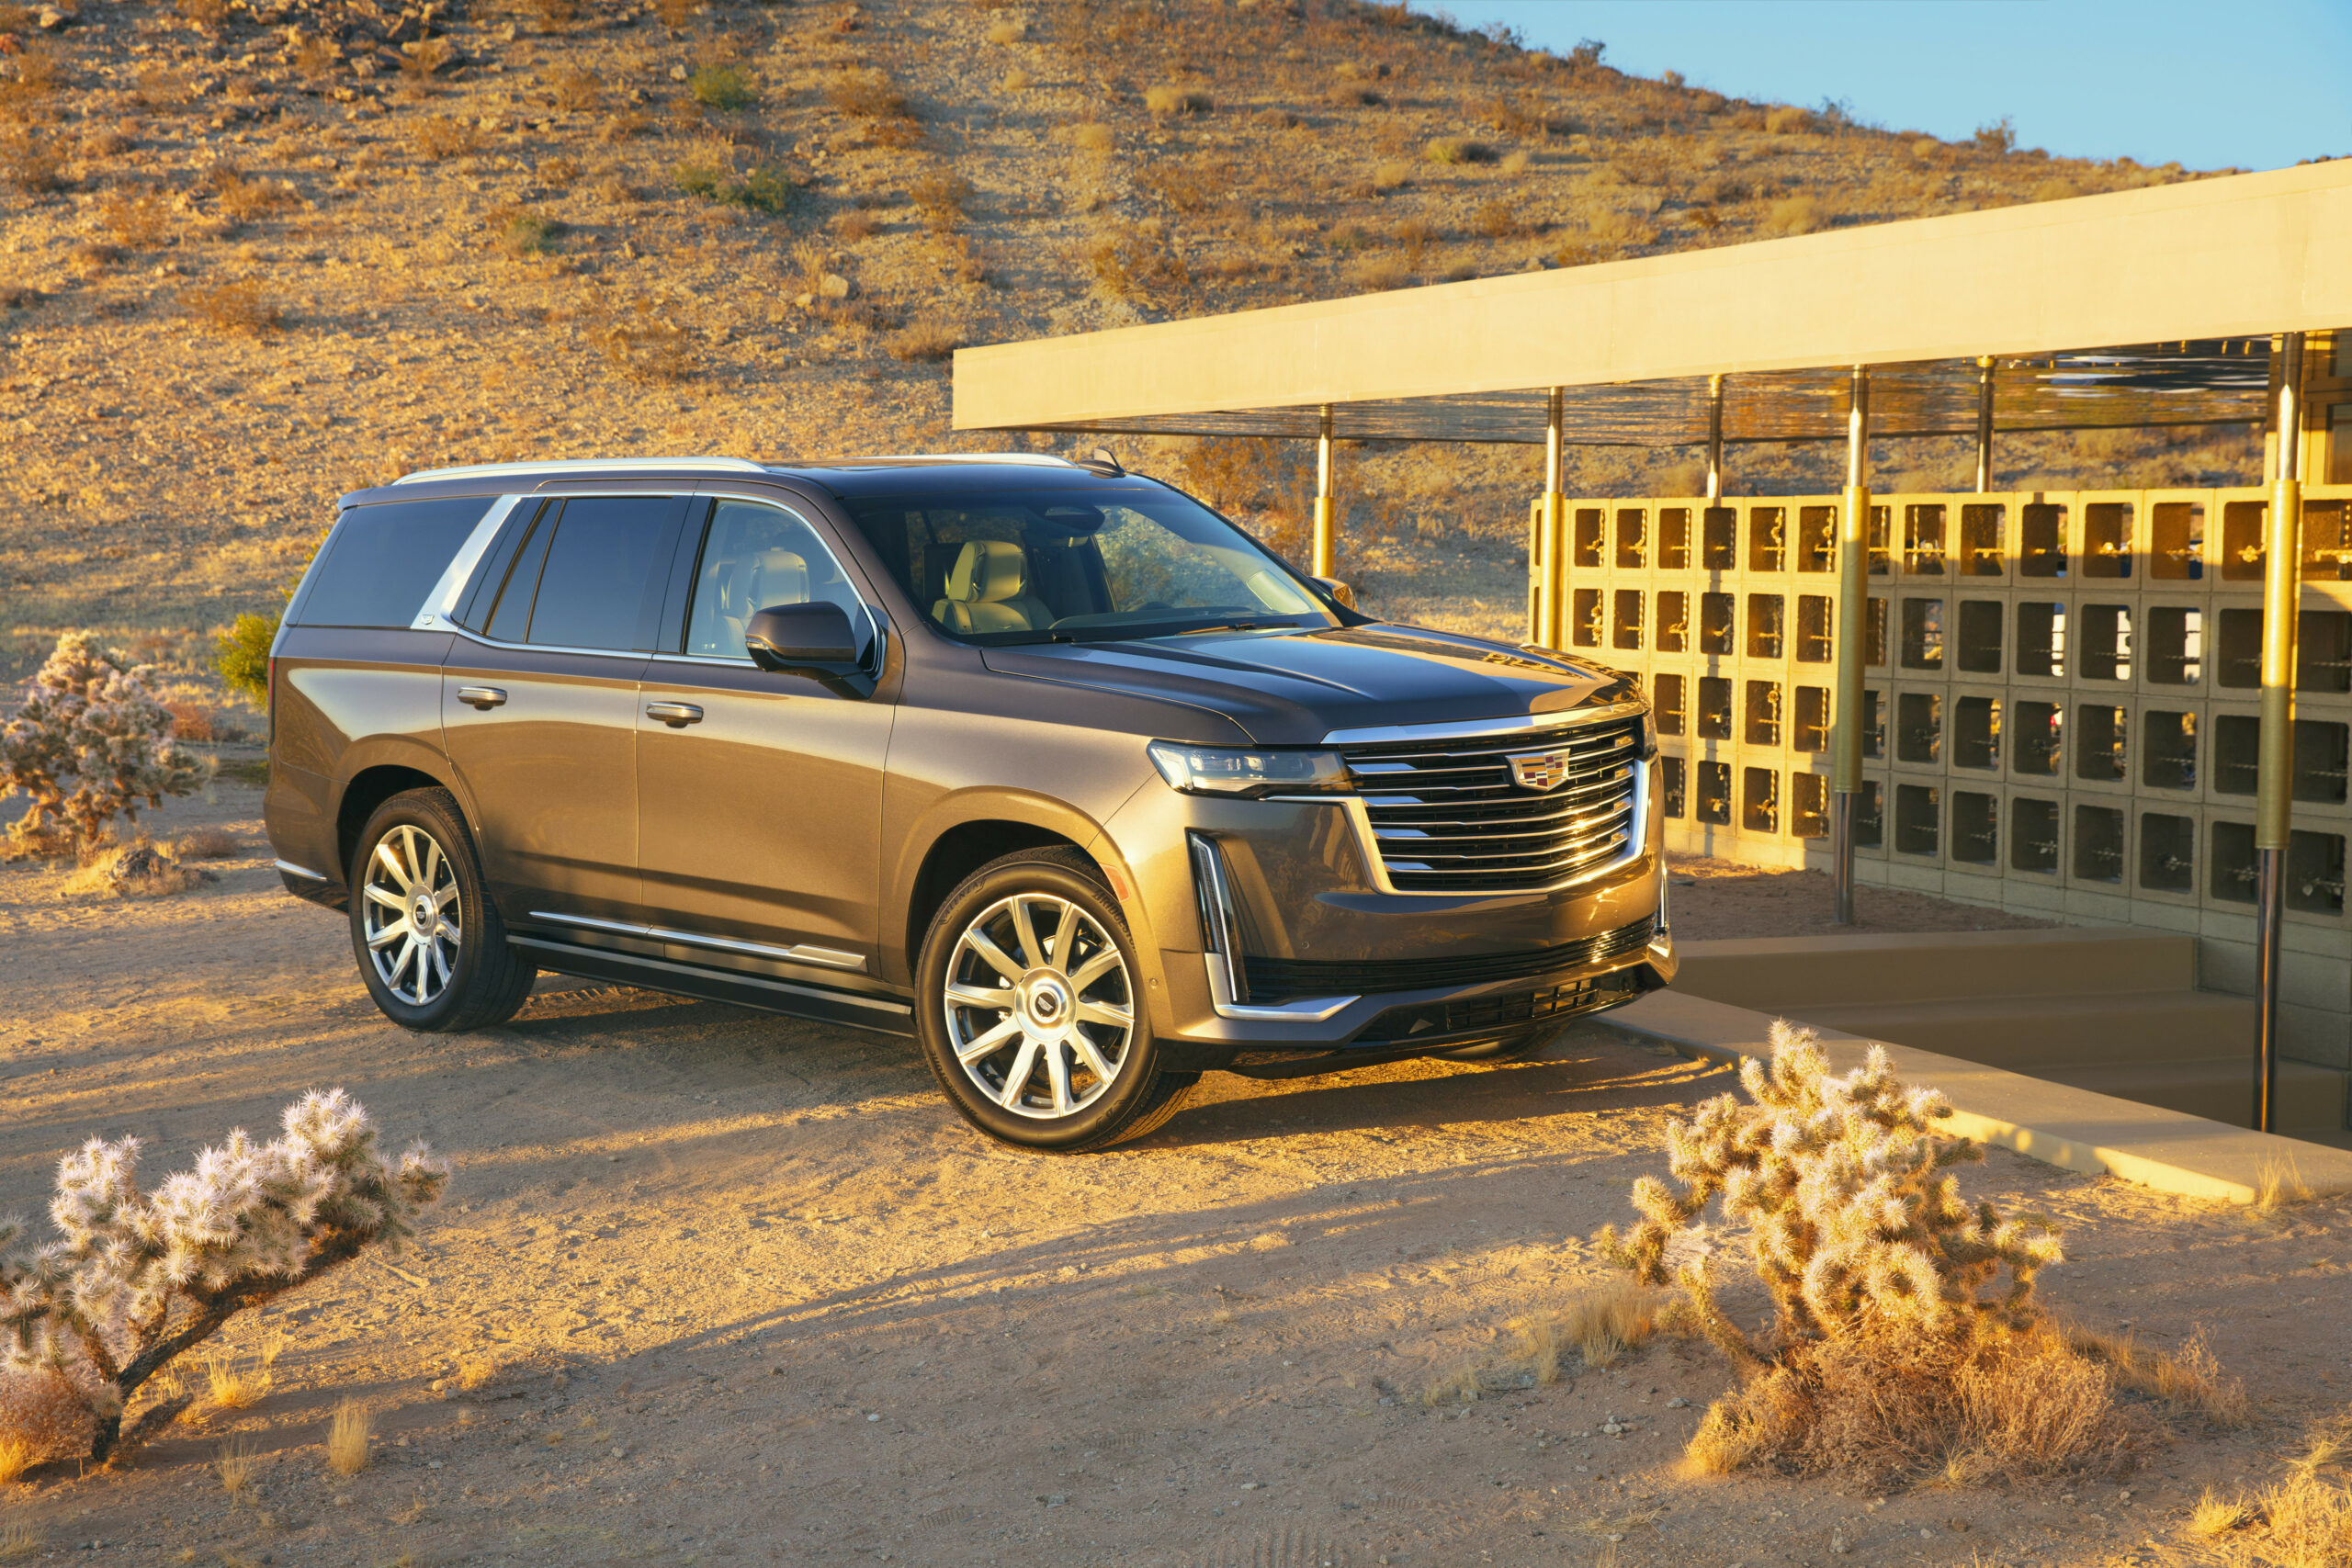 Release Date and Concept Next Generation 2022 Cadillac Escalade